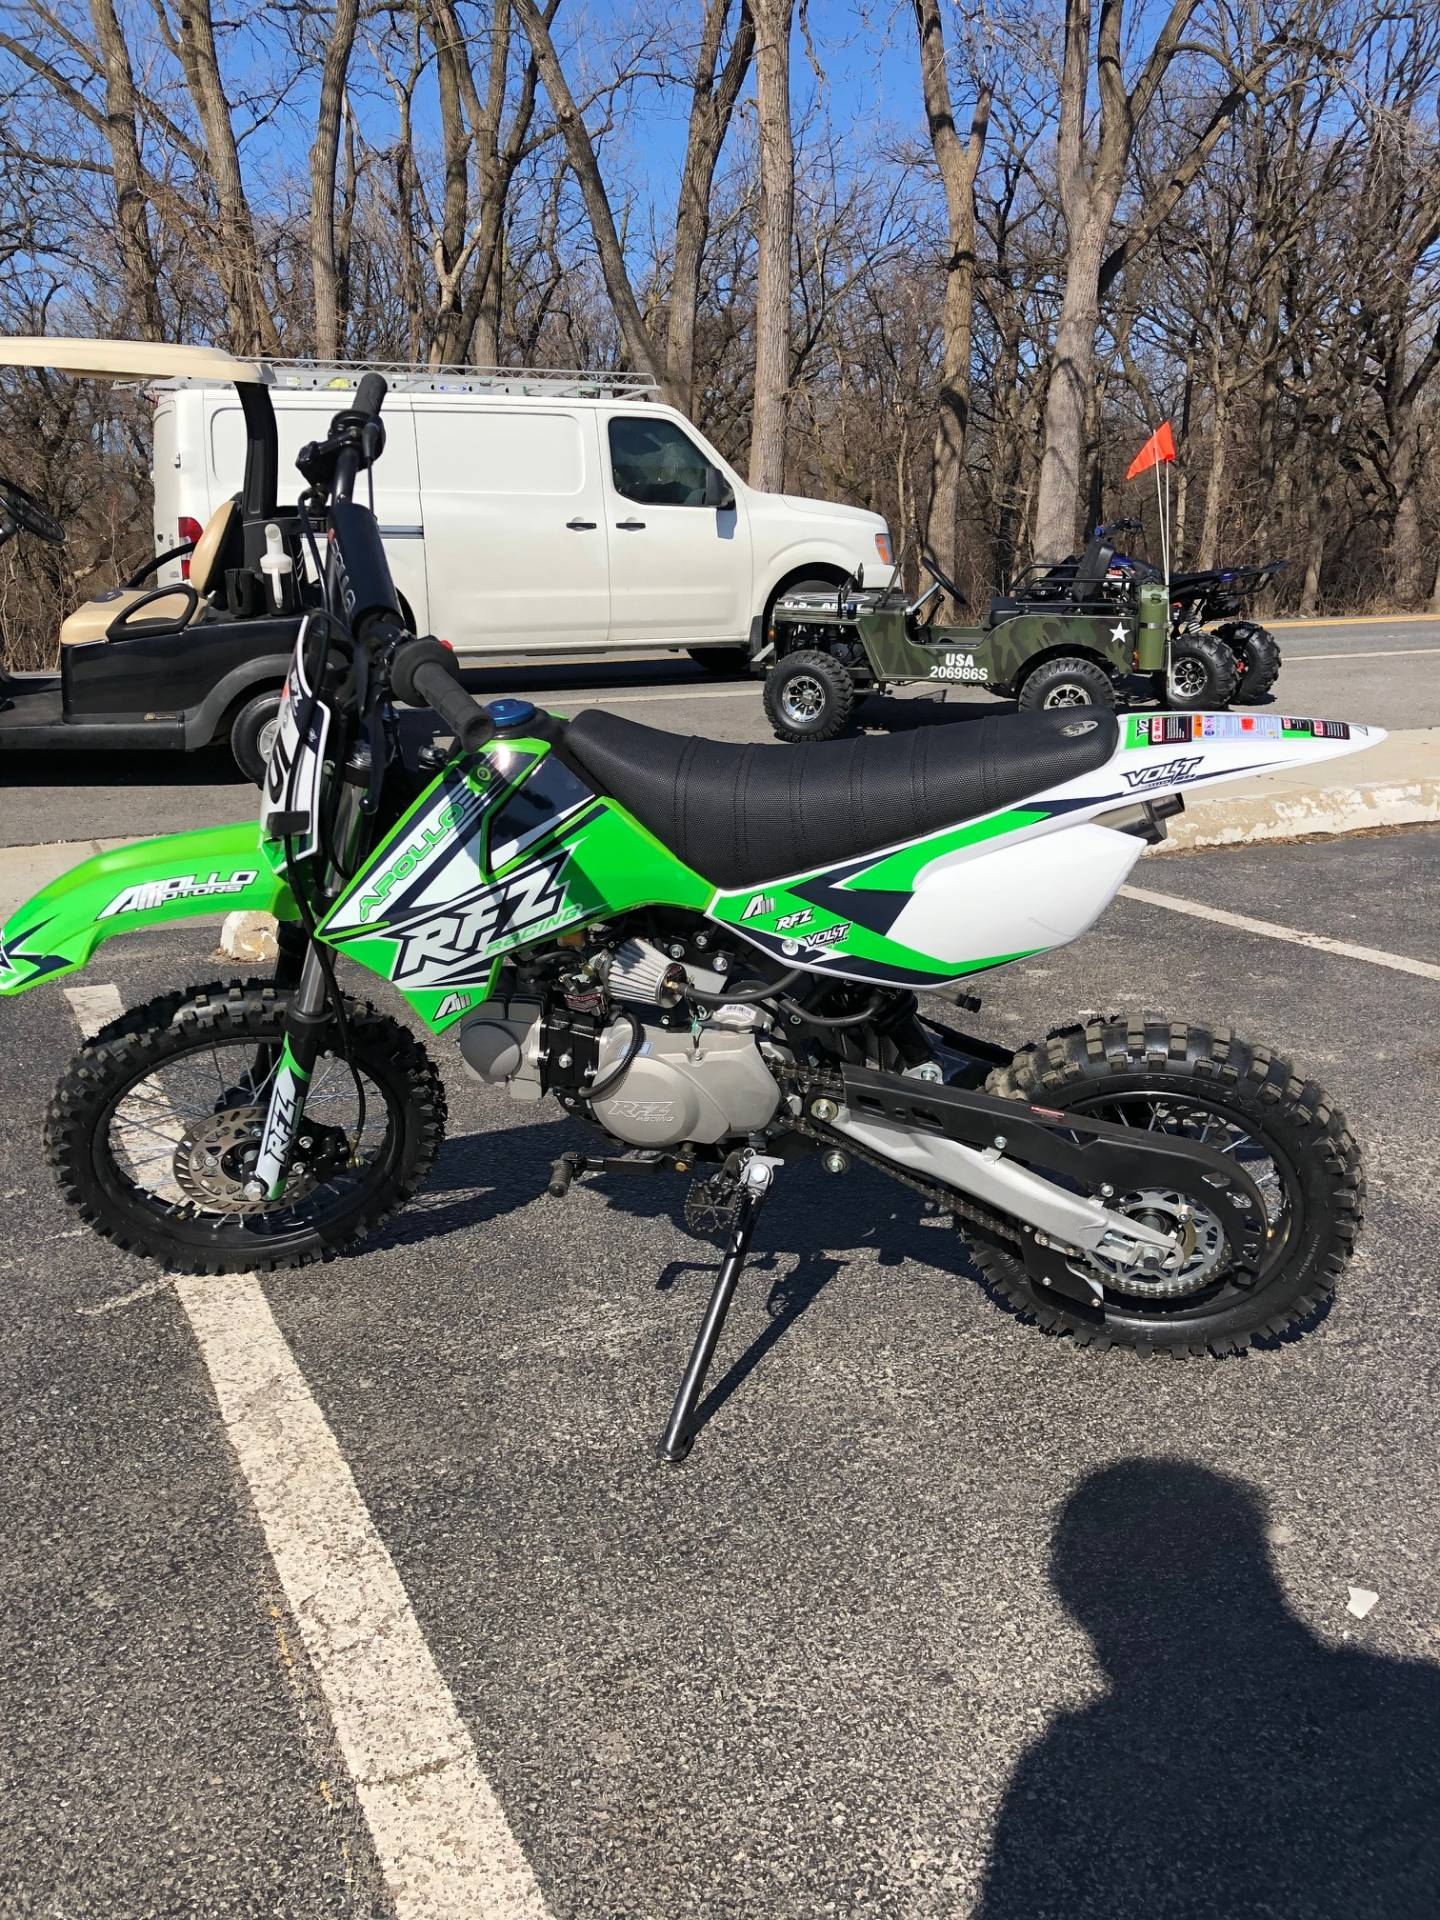 2018 Apollo RFZ 125cc in Forest View, Illinois - Photo 1